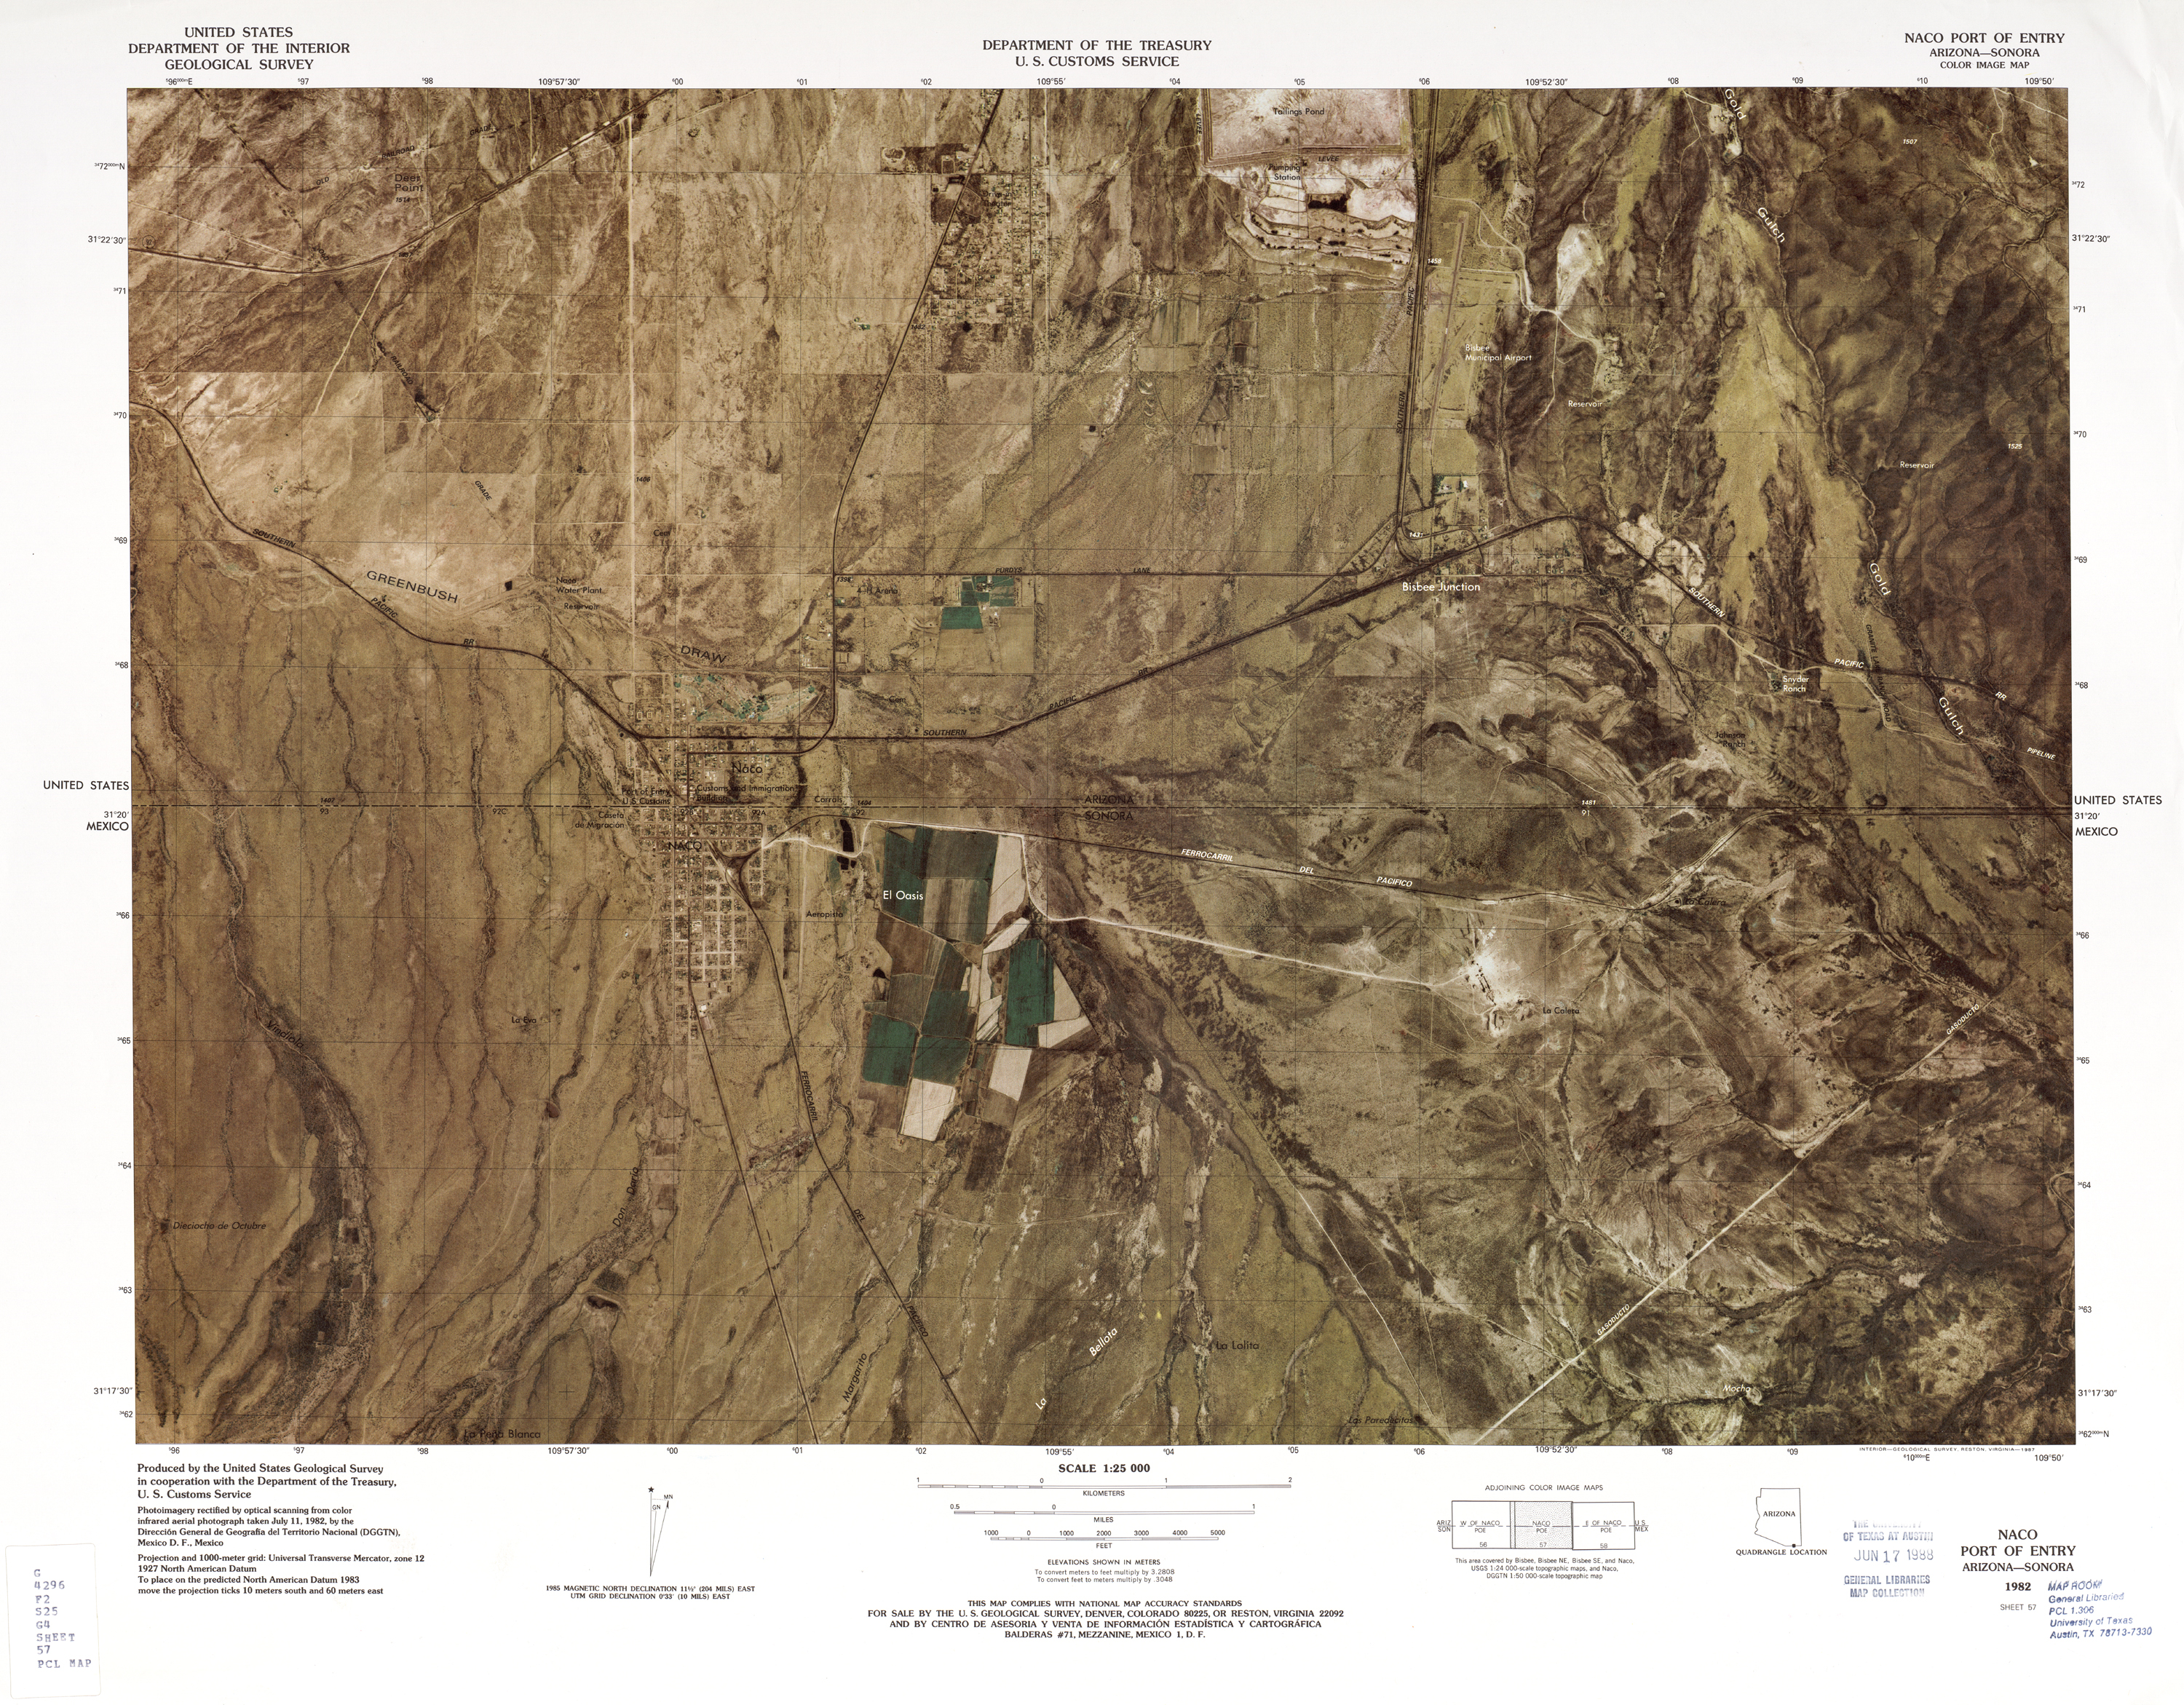 United States-Mexico Border Map, Naco Port of Entry